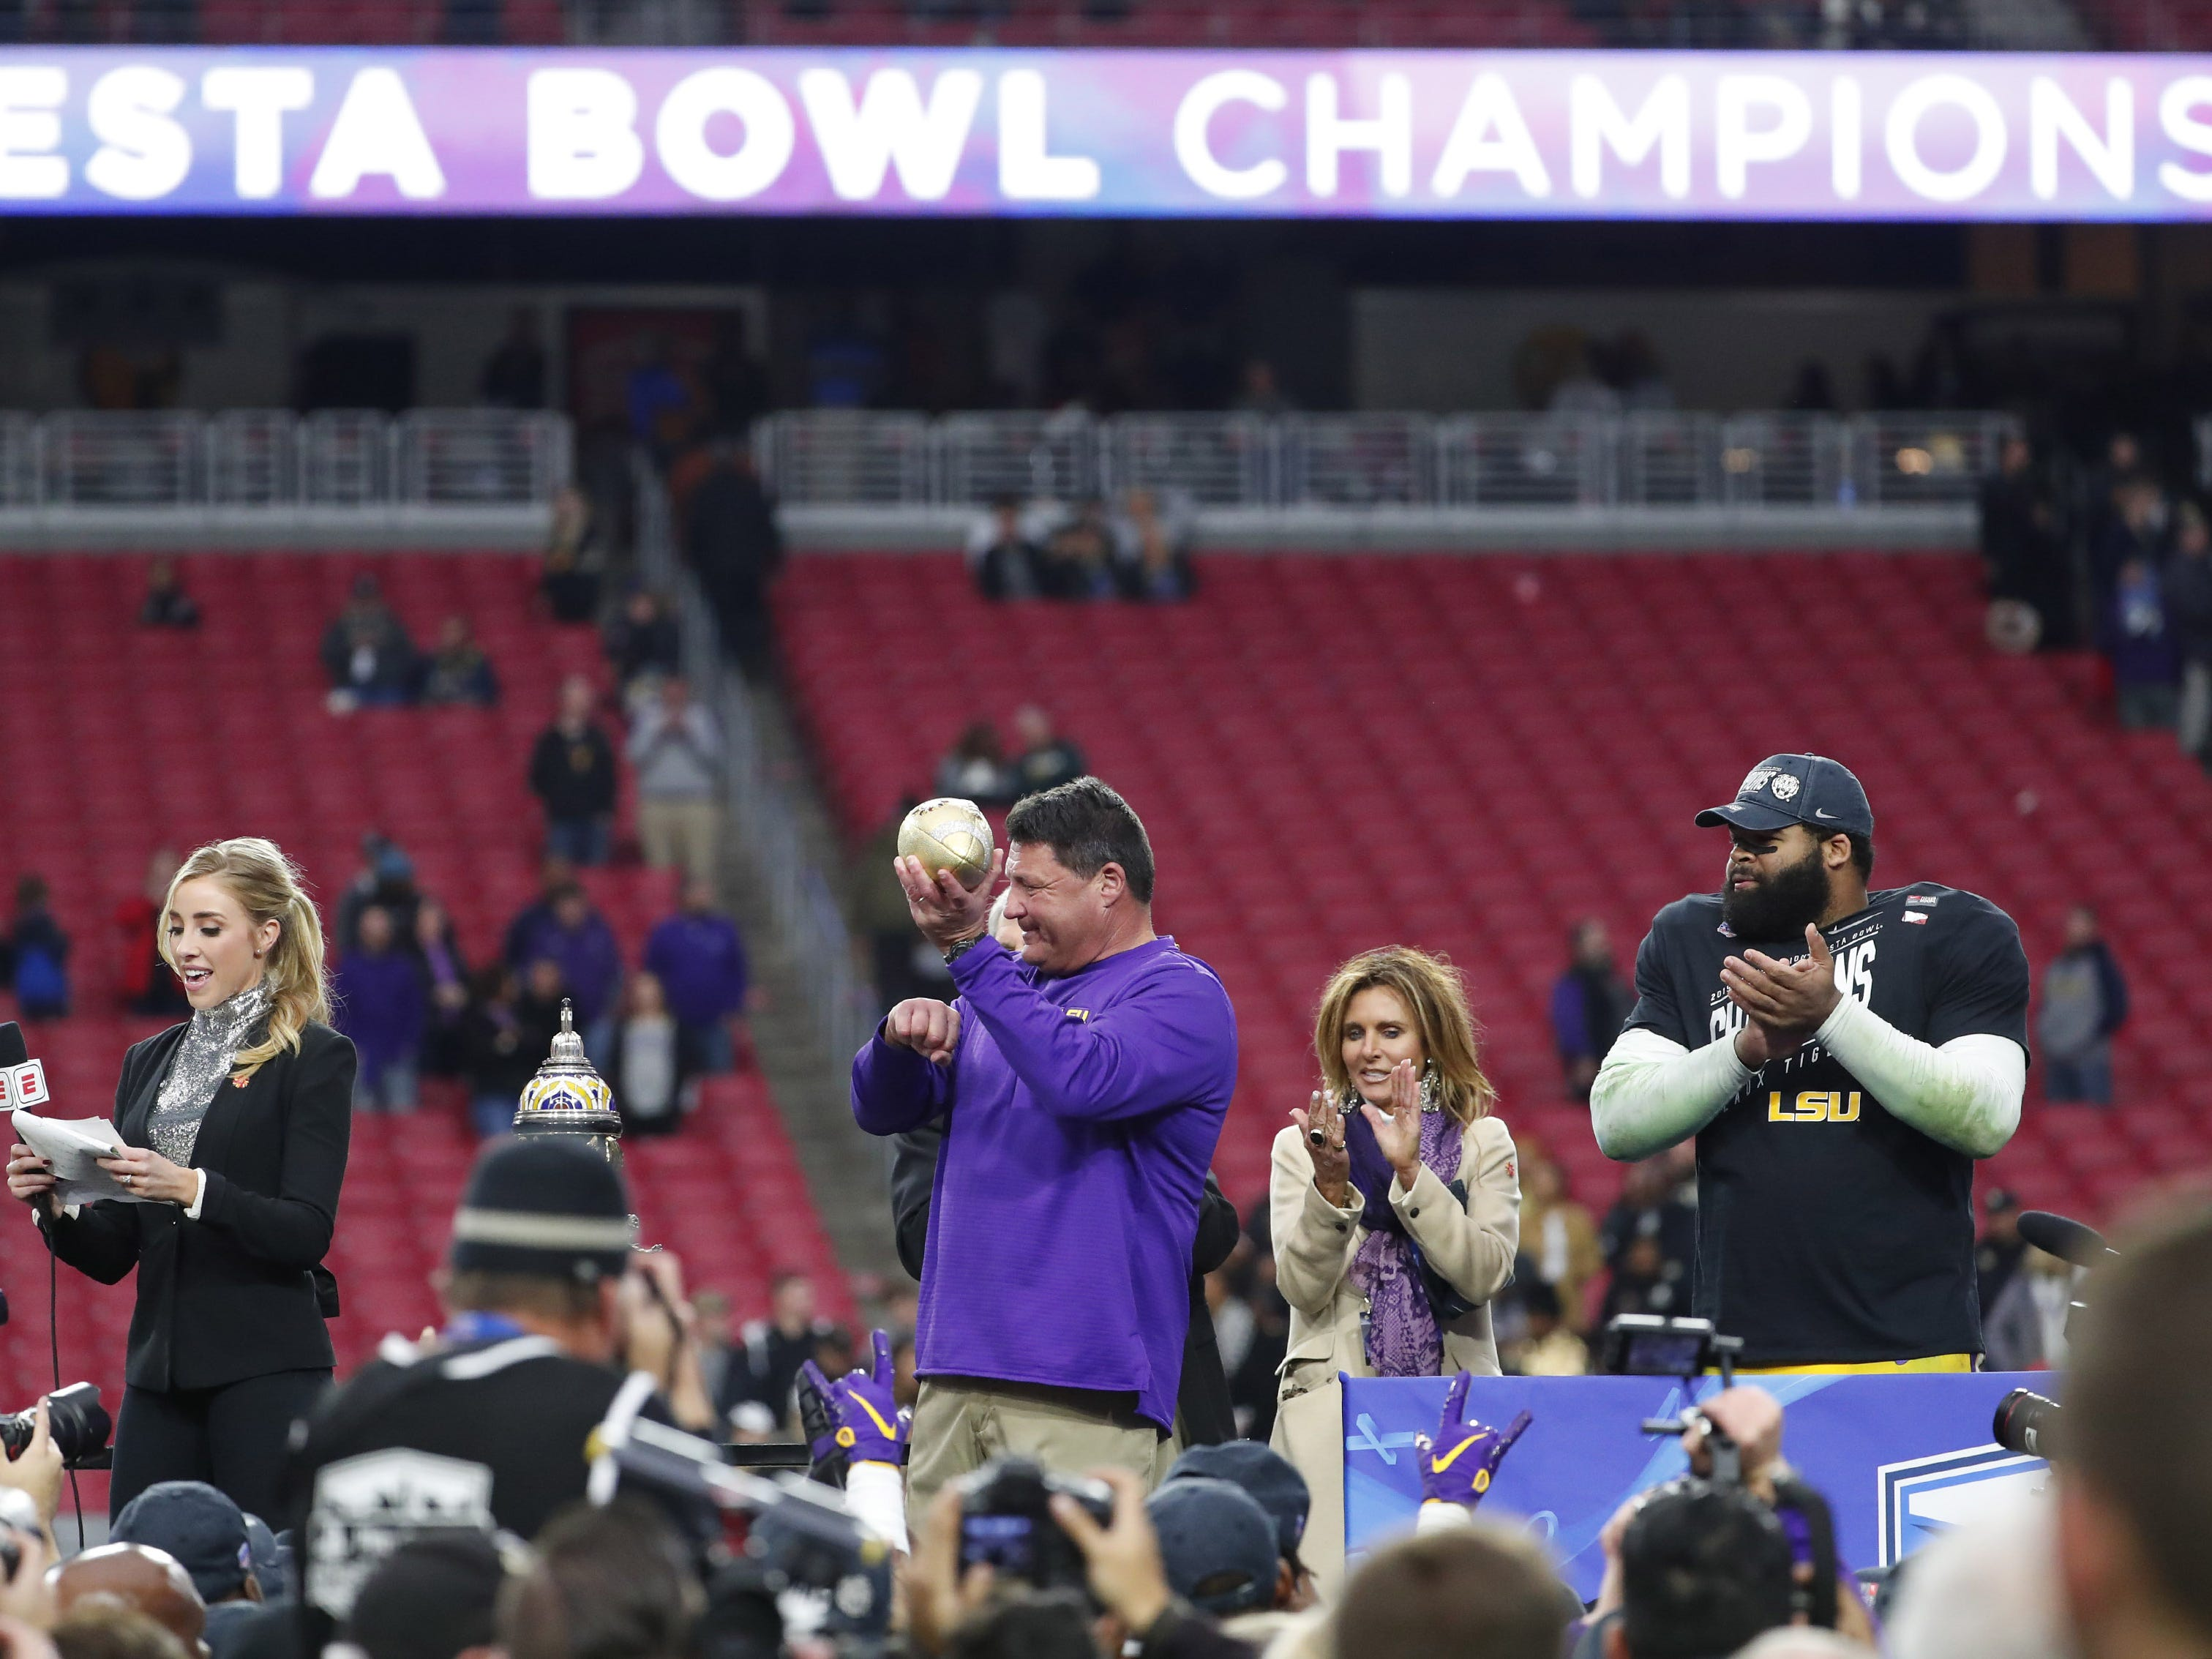 LSU head coach Ed Orgeron holds the Fiesta Bowl trophy after beating UCF in Glendale January 1, 2019. LSU won 40-32.